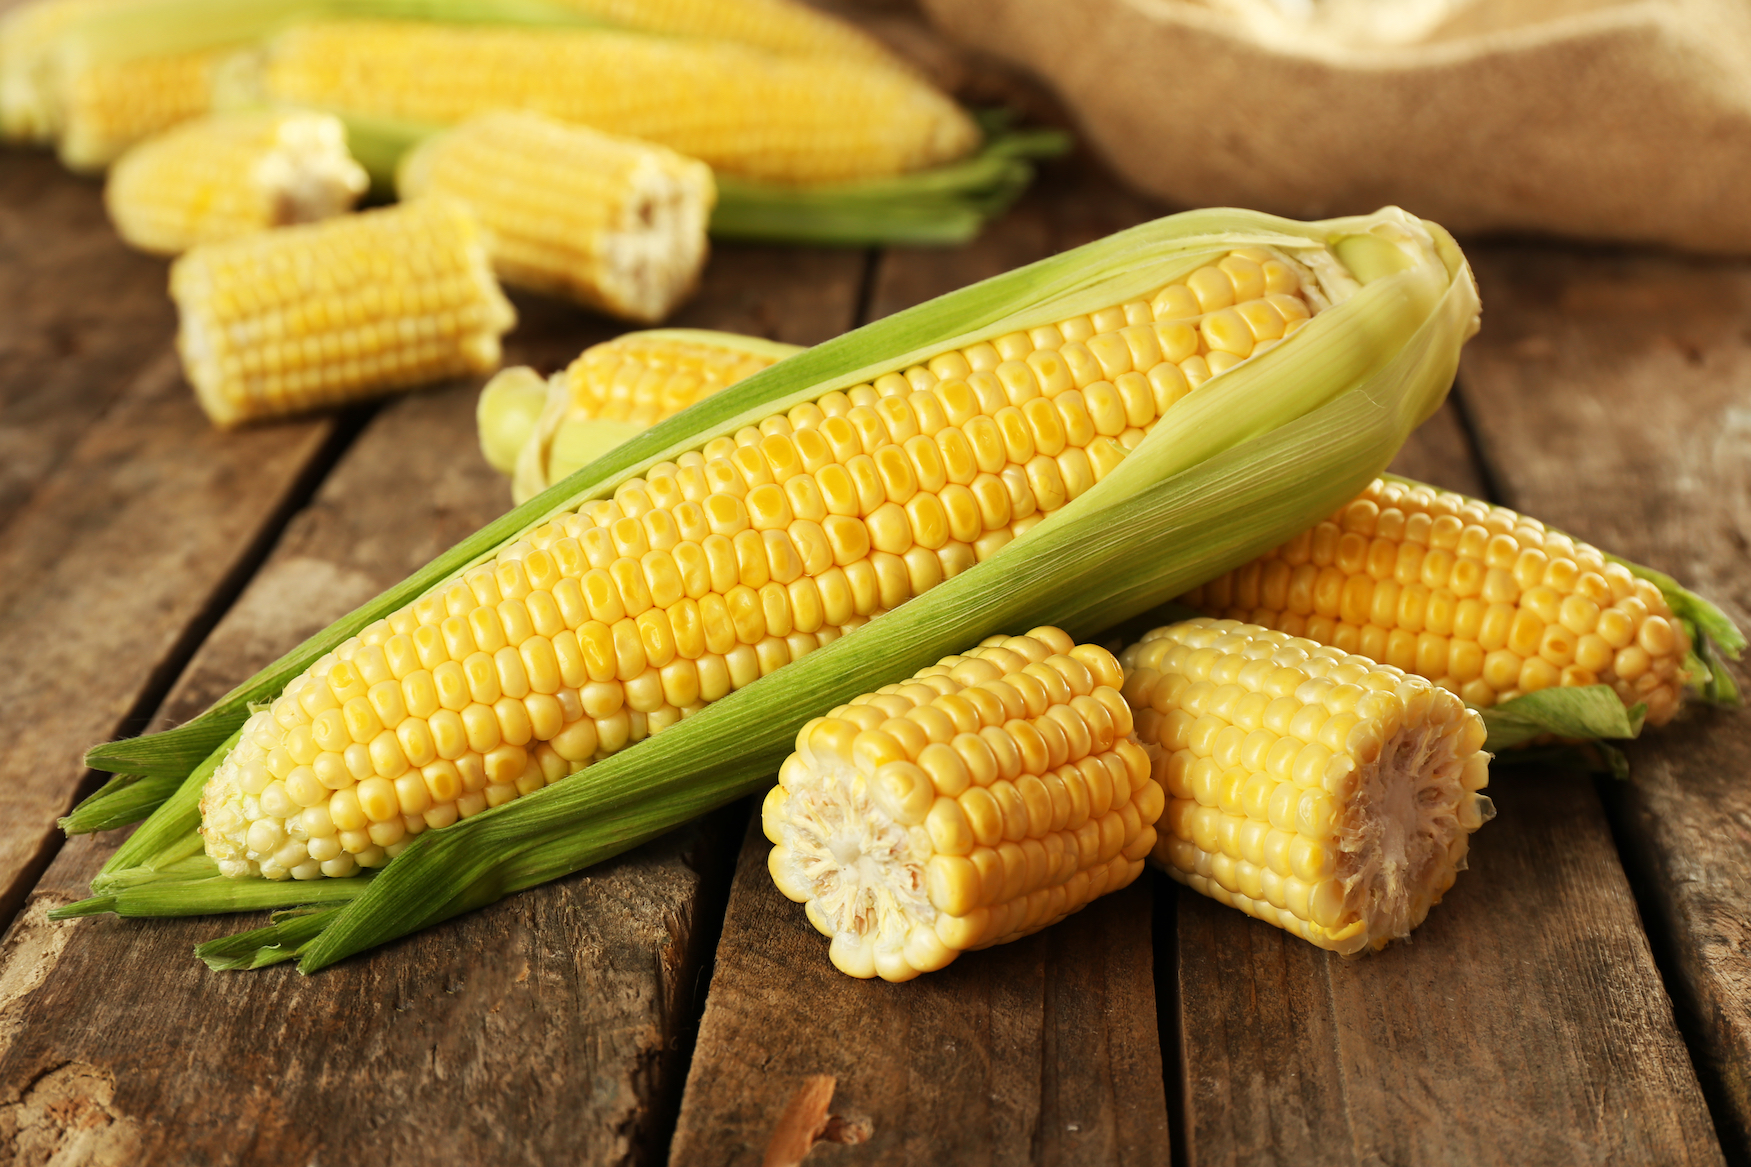 A new study led by the University of Washington has confirmed the theory that higher temperatures associated with global warming will lead to smaller yields of corn across the world by the end of the century.